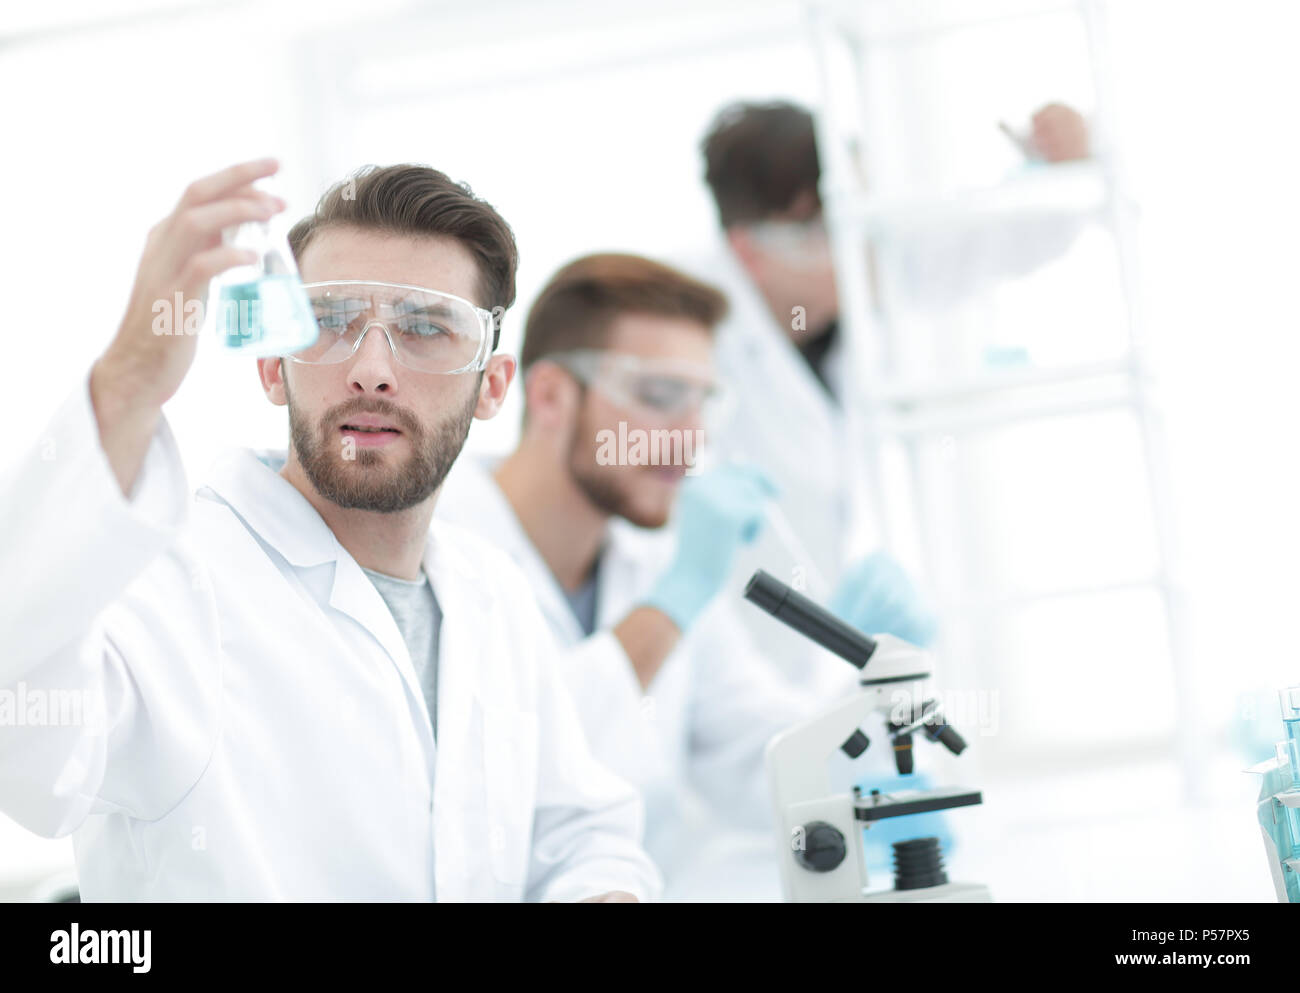 closeup.scientists in the laboratory - Stock Image